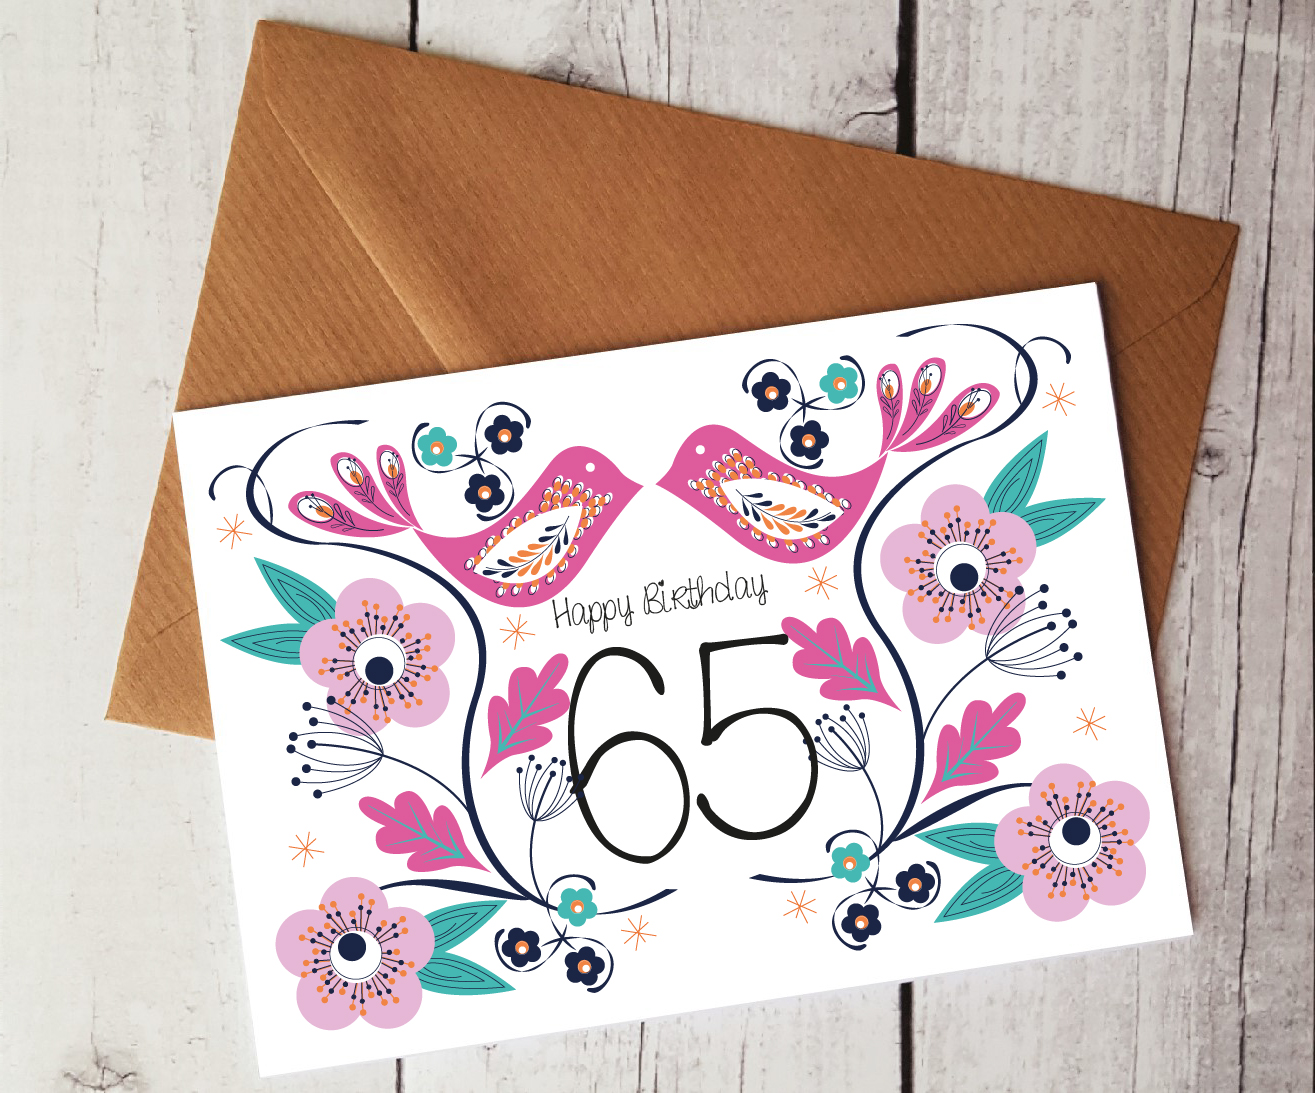 65th Birthday Card By Beautifully Obscene